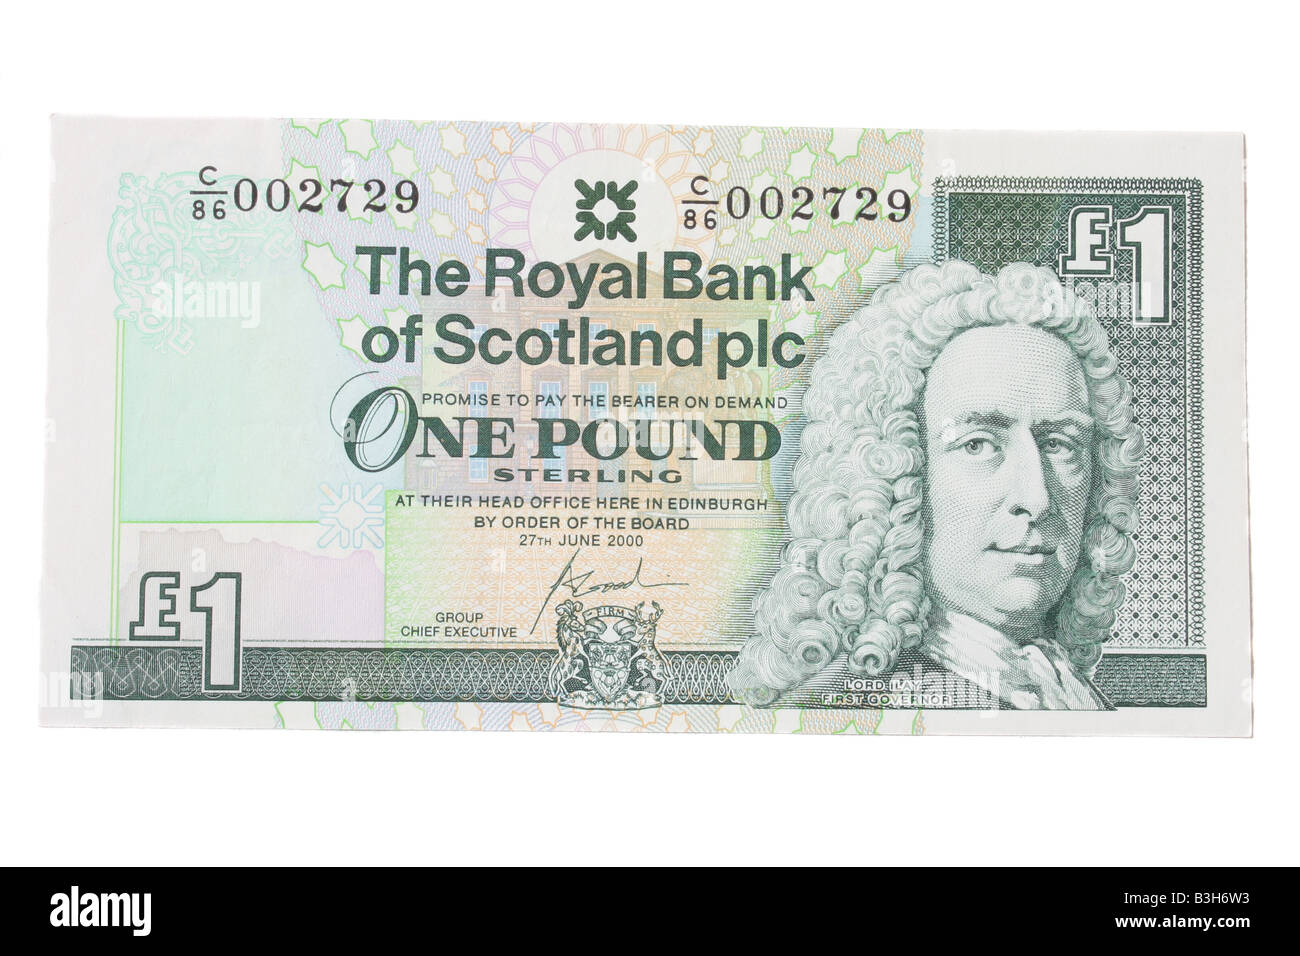 bank scotland note stockfotos bank scotland note bilder alamy. Black Bedroom Furniture Sets. Home Design Ideas